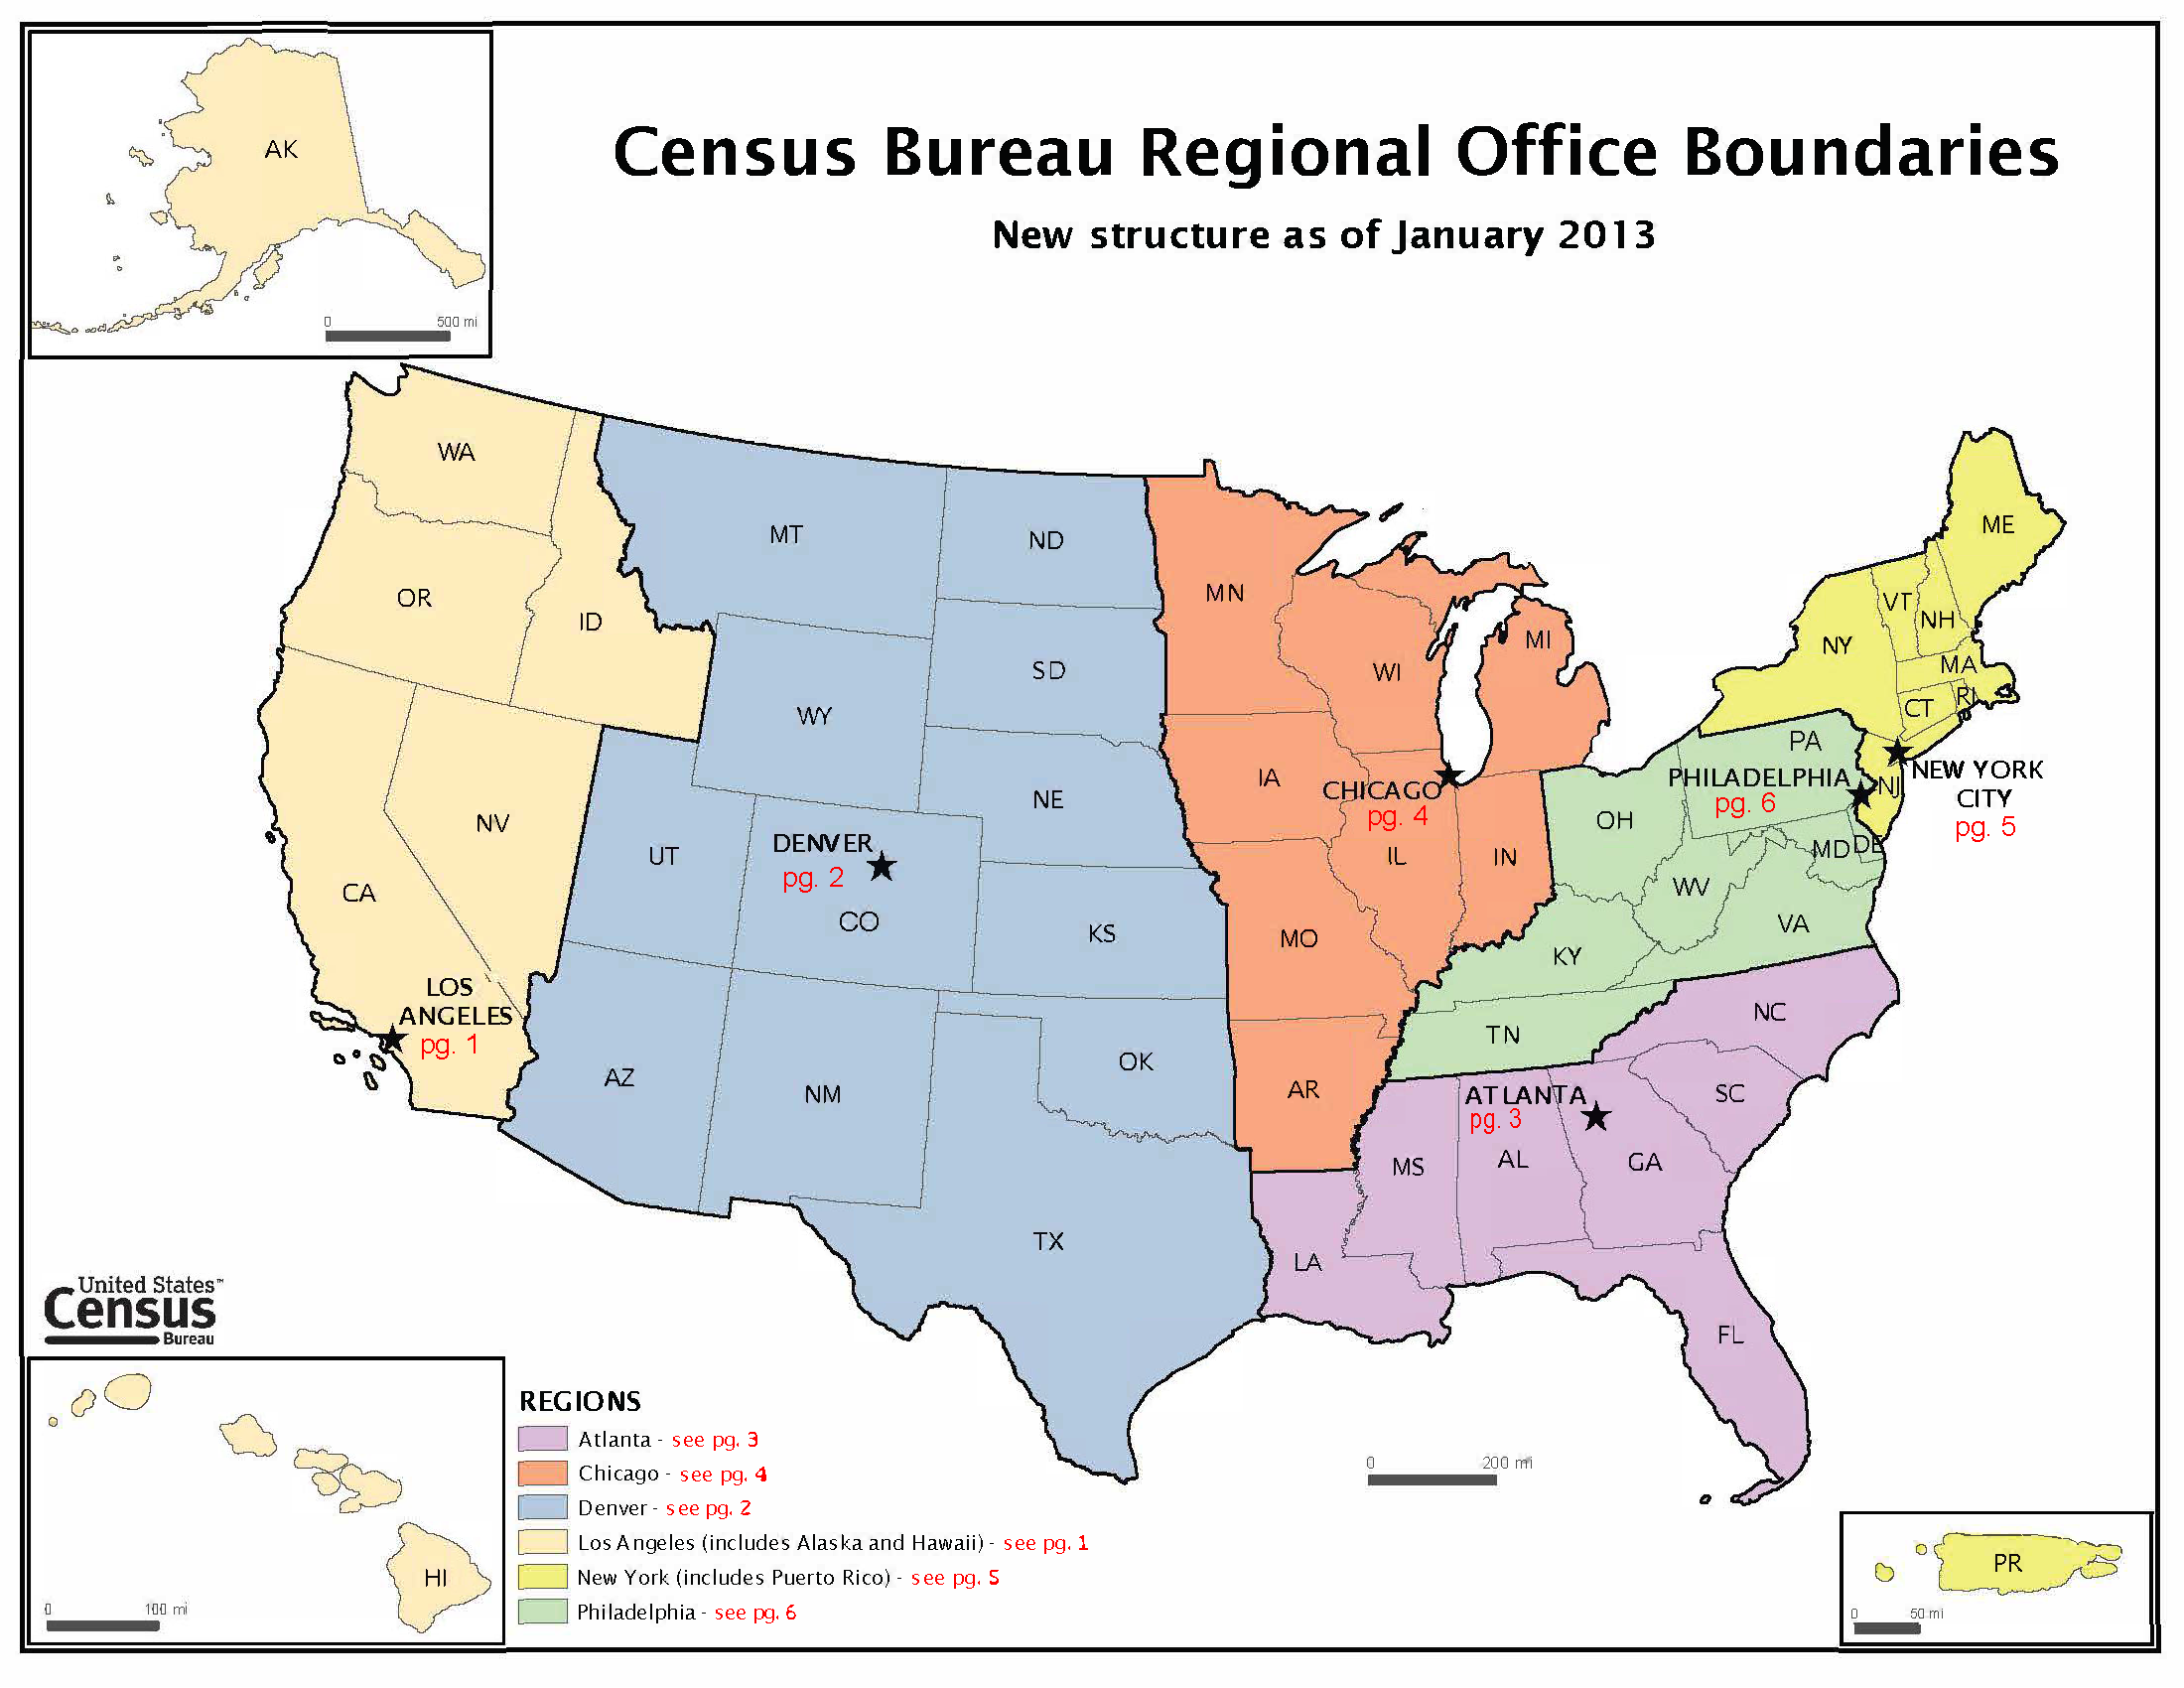 Census Bureau Regional Office Boundaries Map